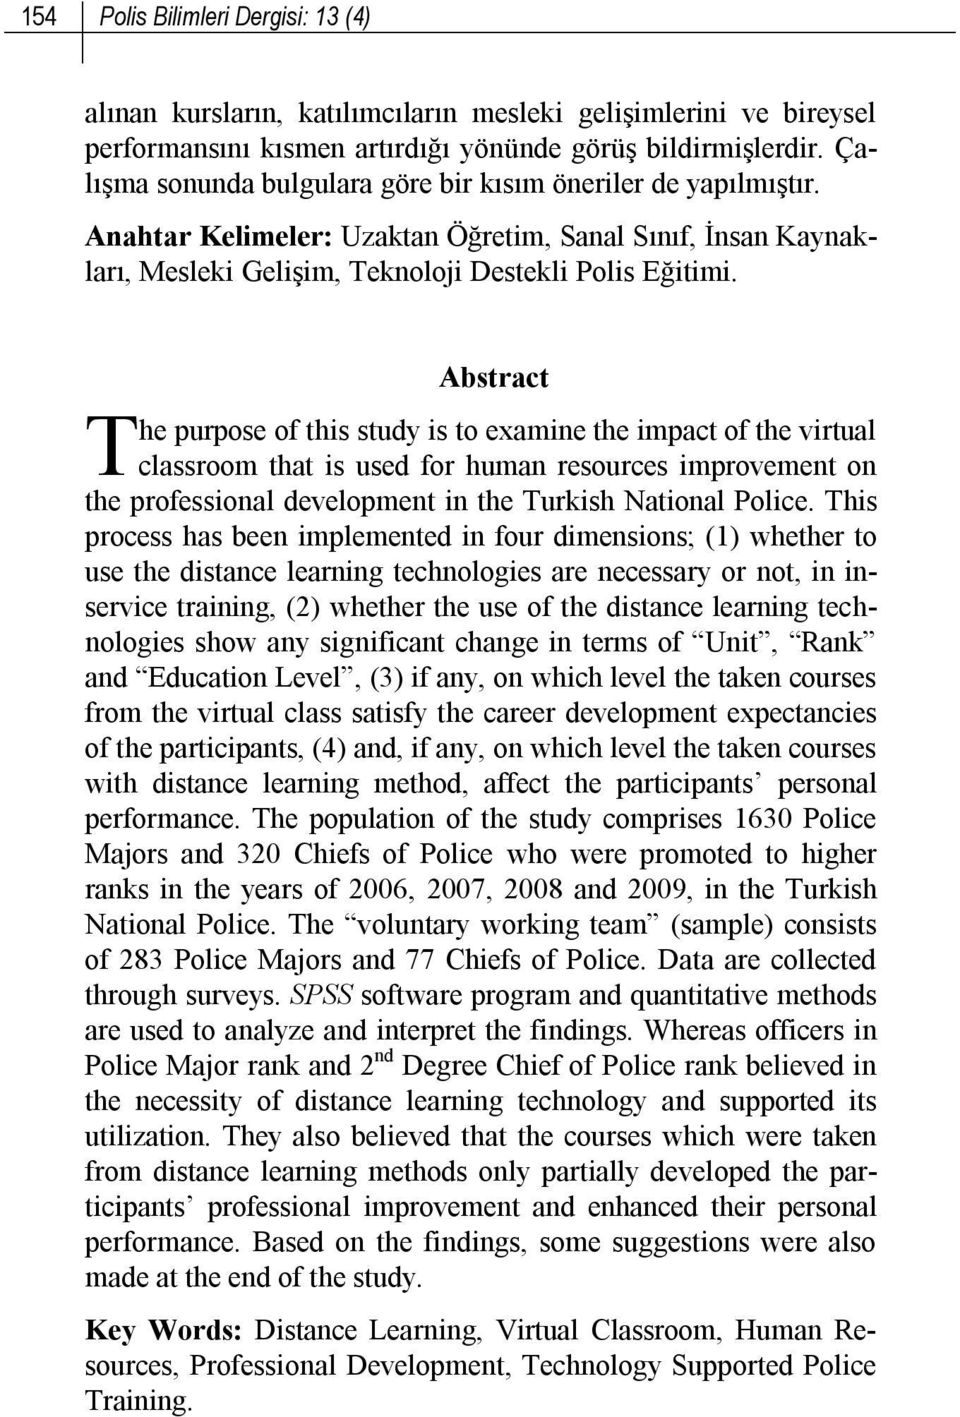 T Abstract he purpose of this study is to examine the impact of the virtual classroom that is used for human resources improvement on the professional development in the Turkish National Police.